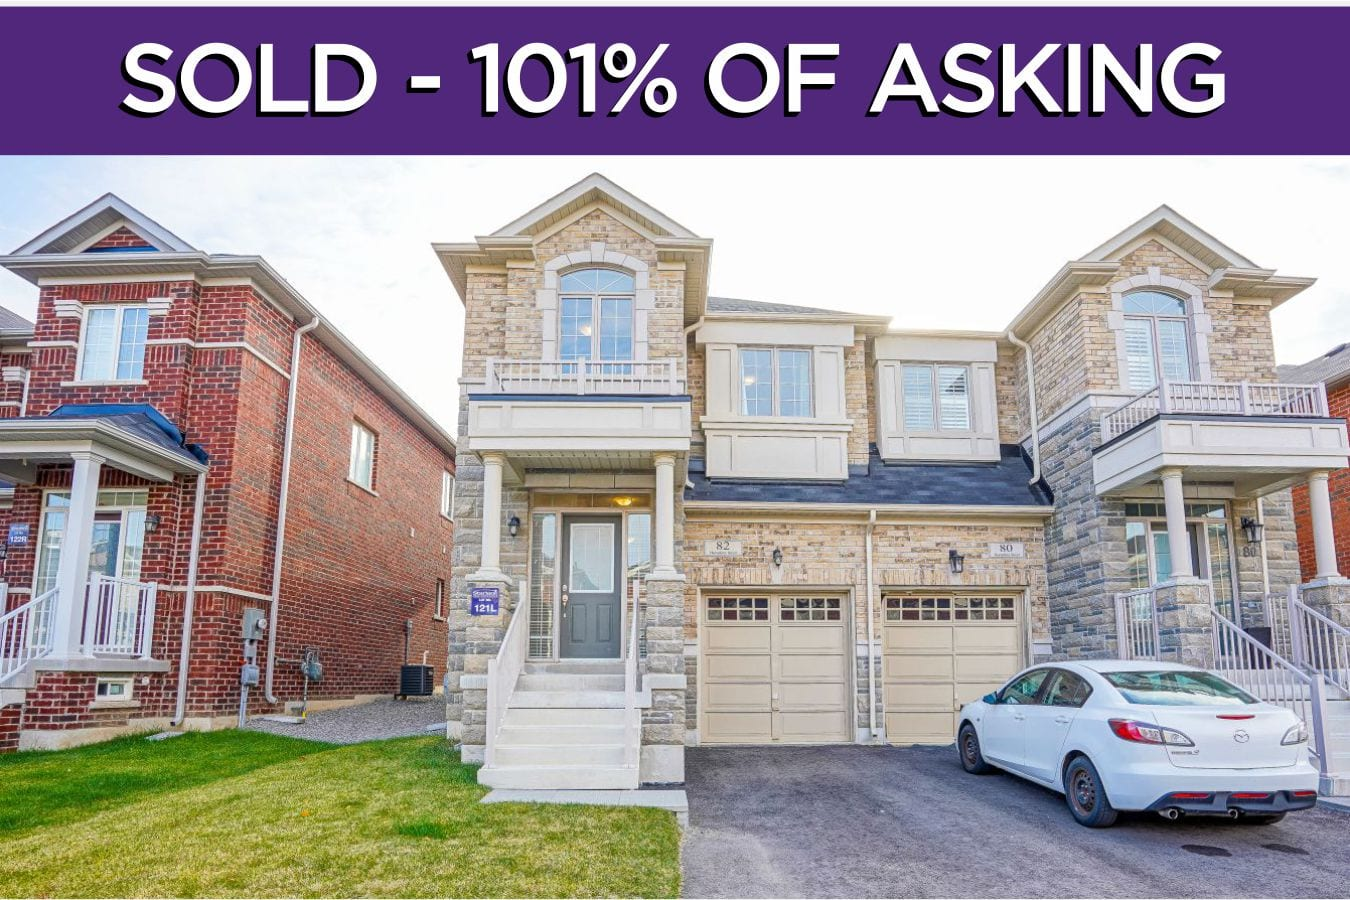 82 Humphrey Street - Sold By The Hamilton Real Estate Experts